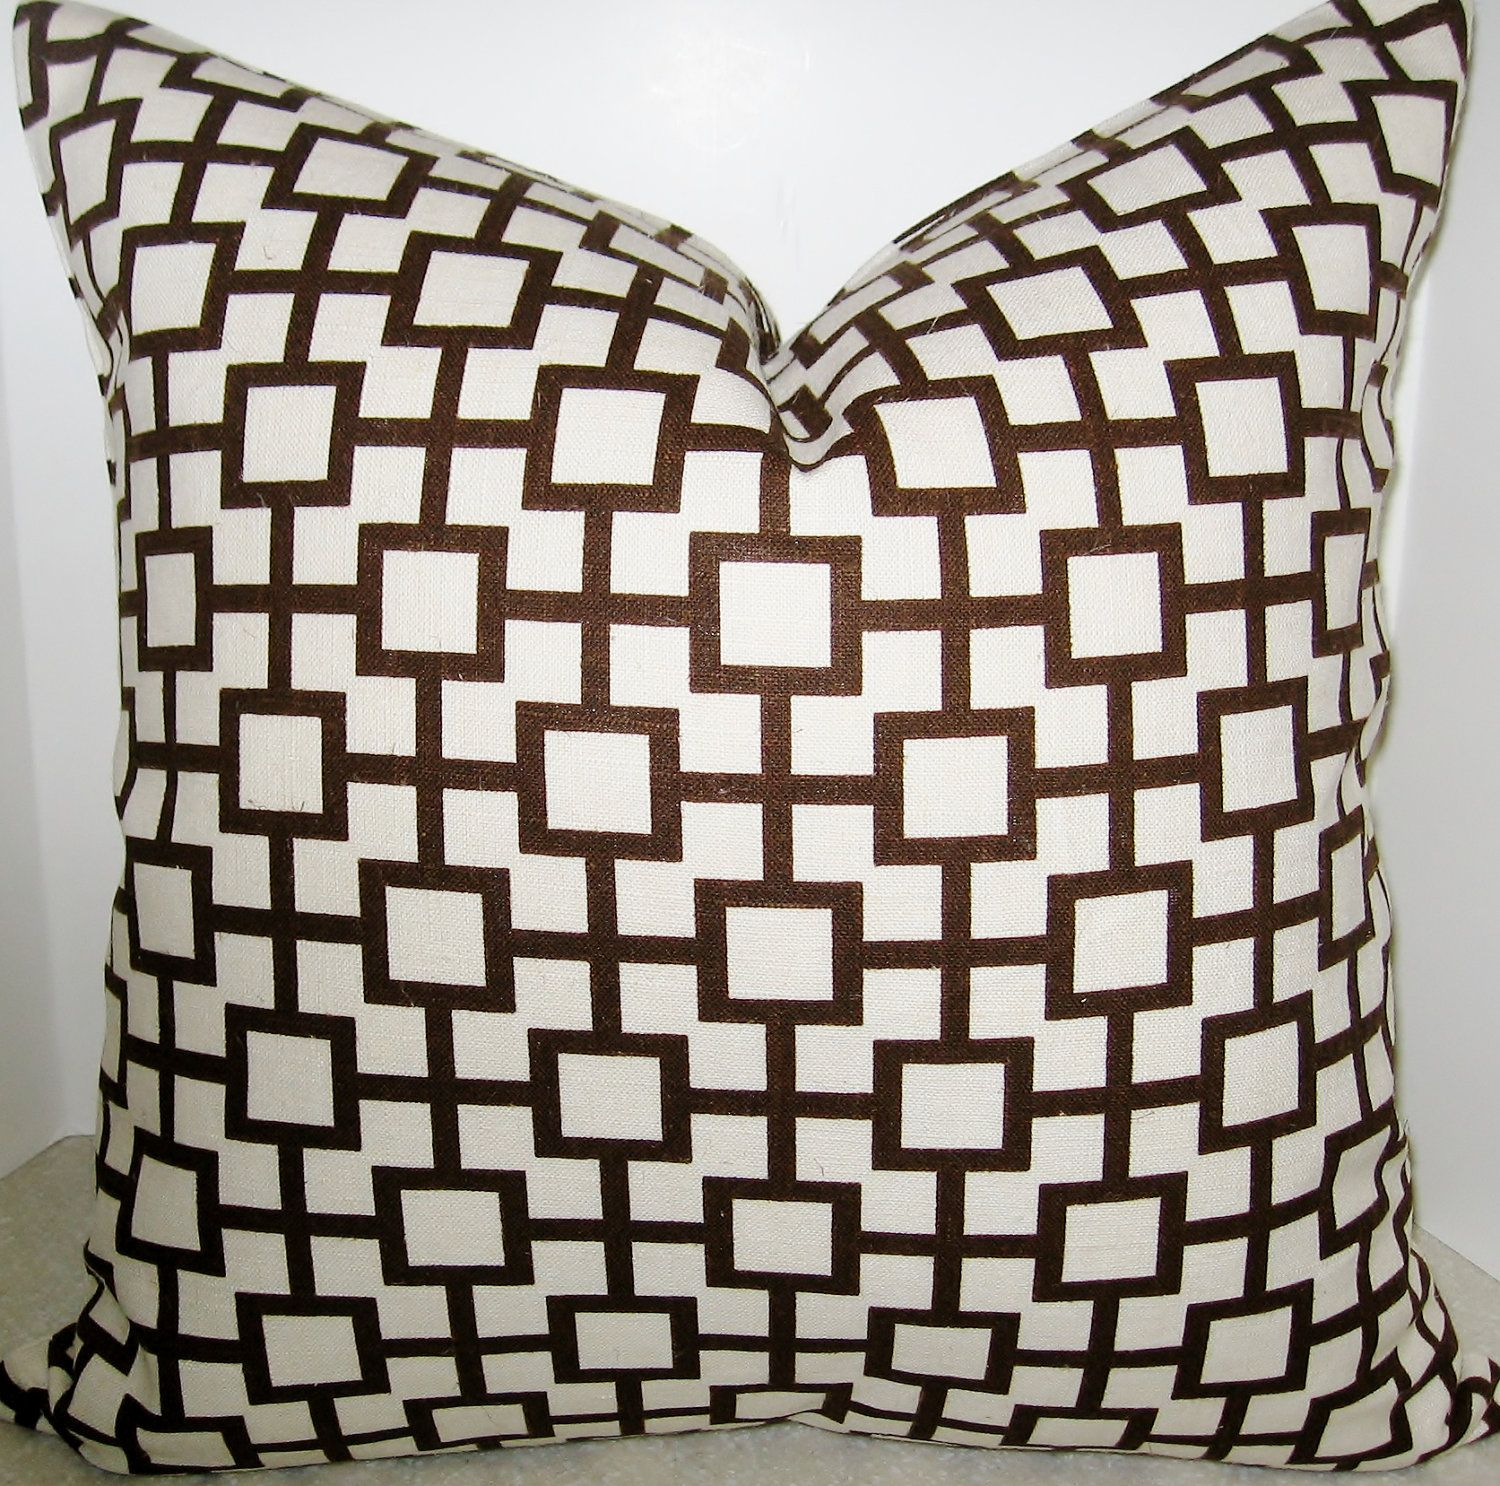 BOTH SIDES 20 x 20 Cats Cradle Amber brown beige cream square geometric pillow cover Robert Allen. $38.00, via Etsy.